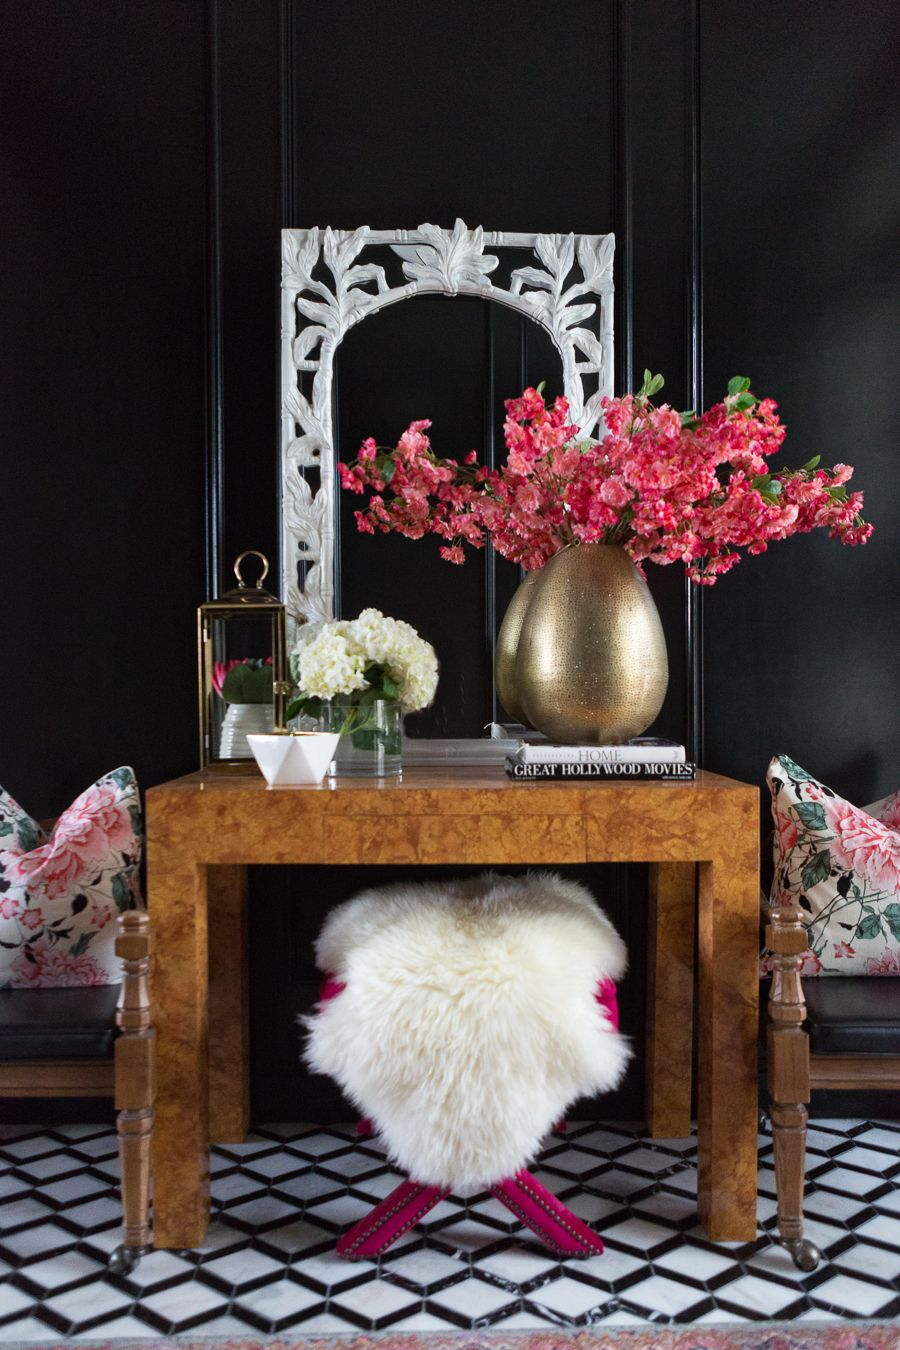 5 tips to decorate your home with drew barrymore flower